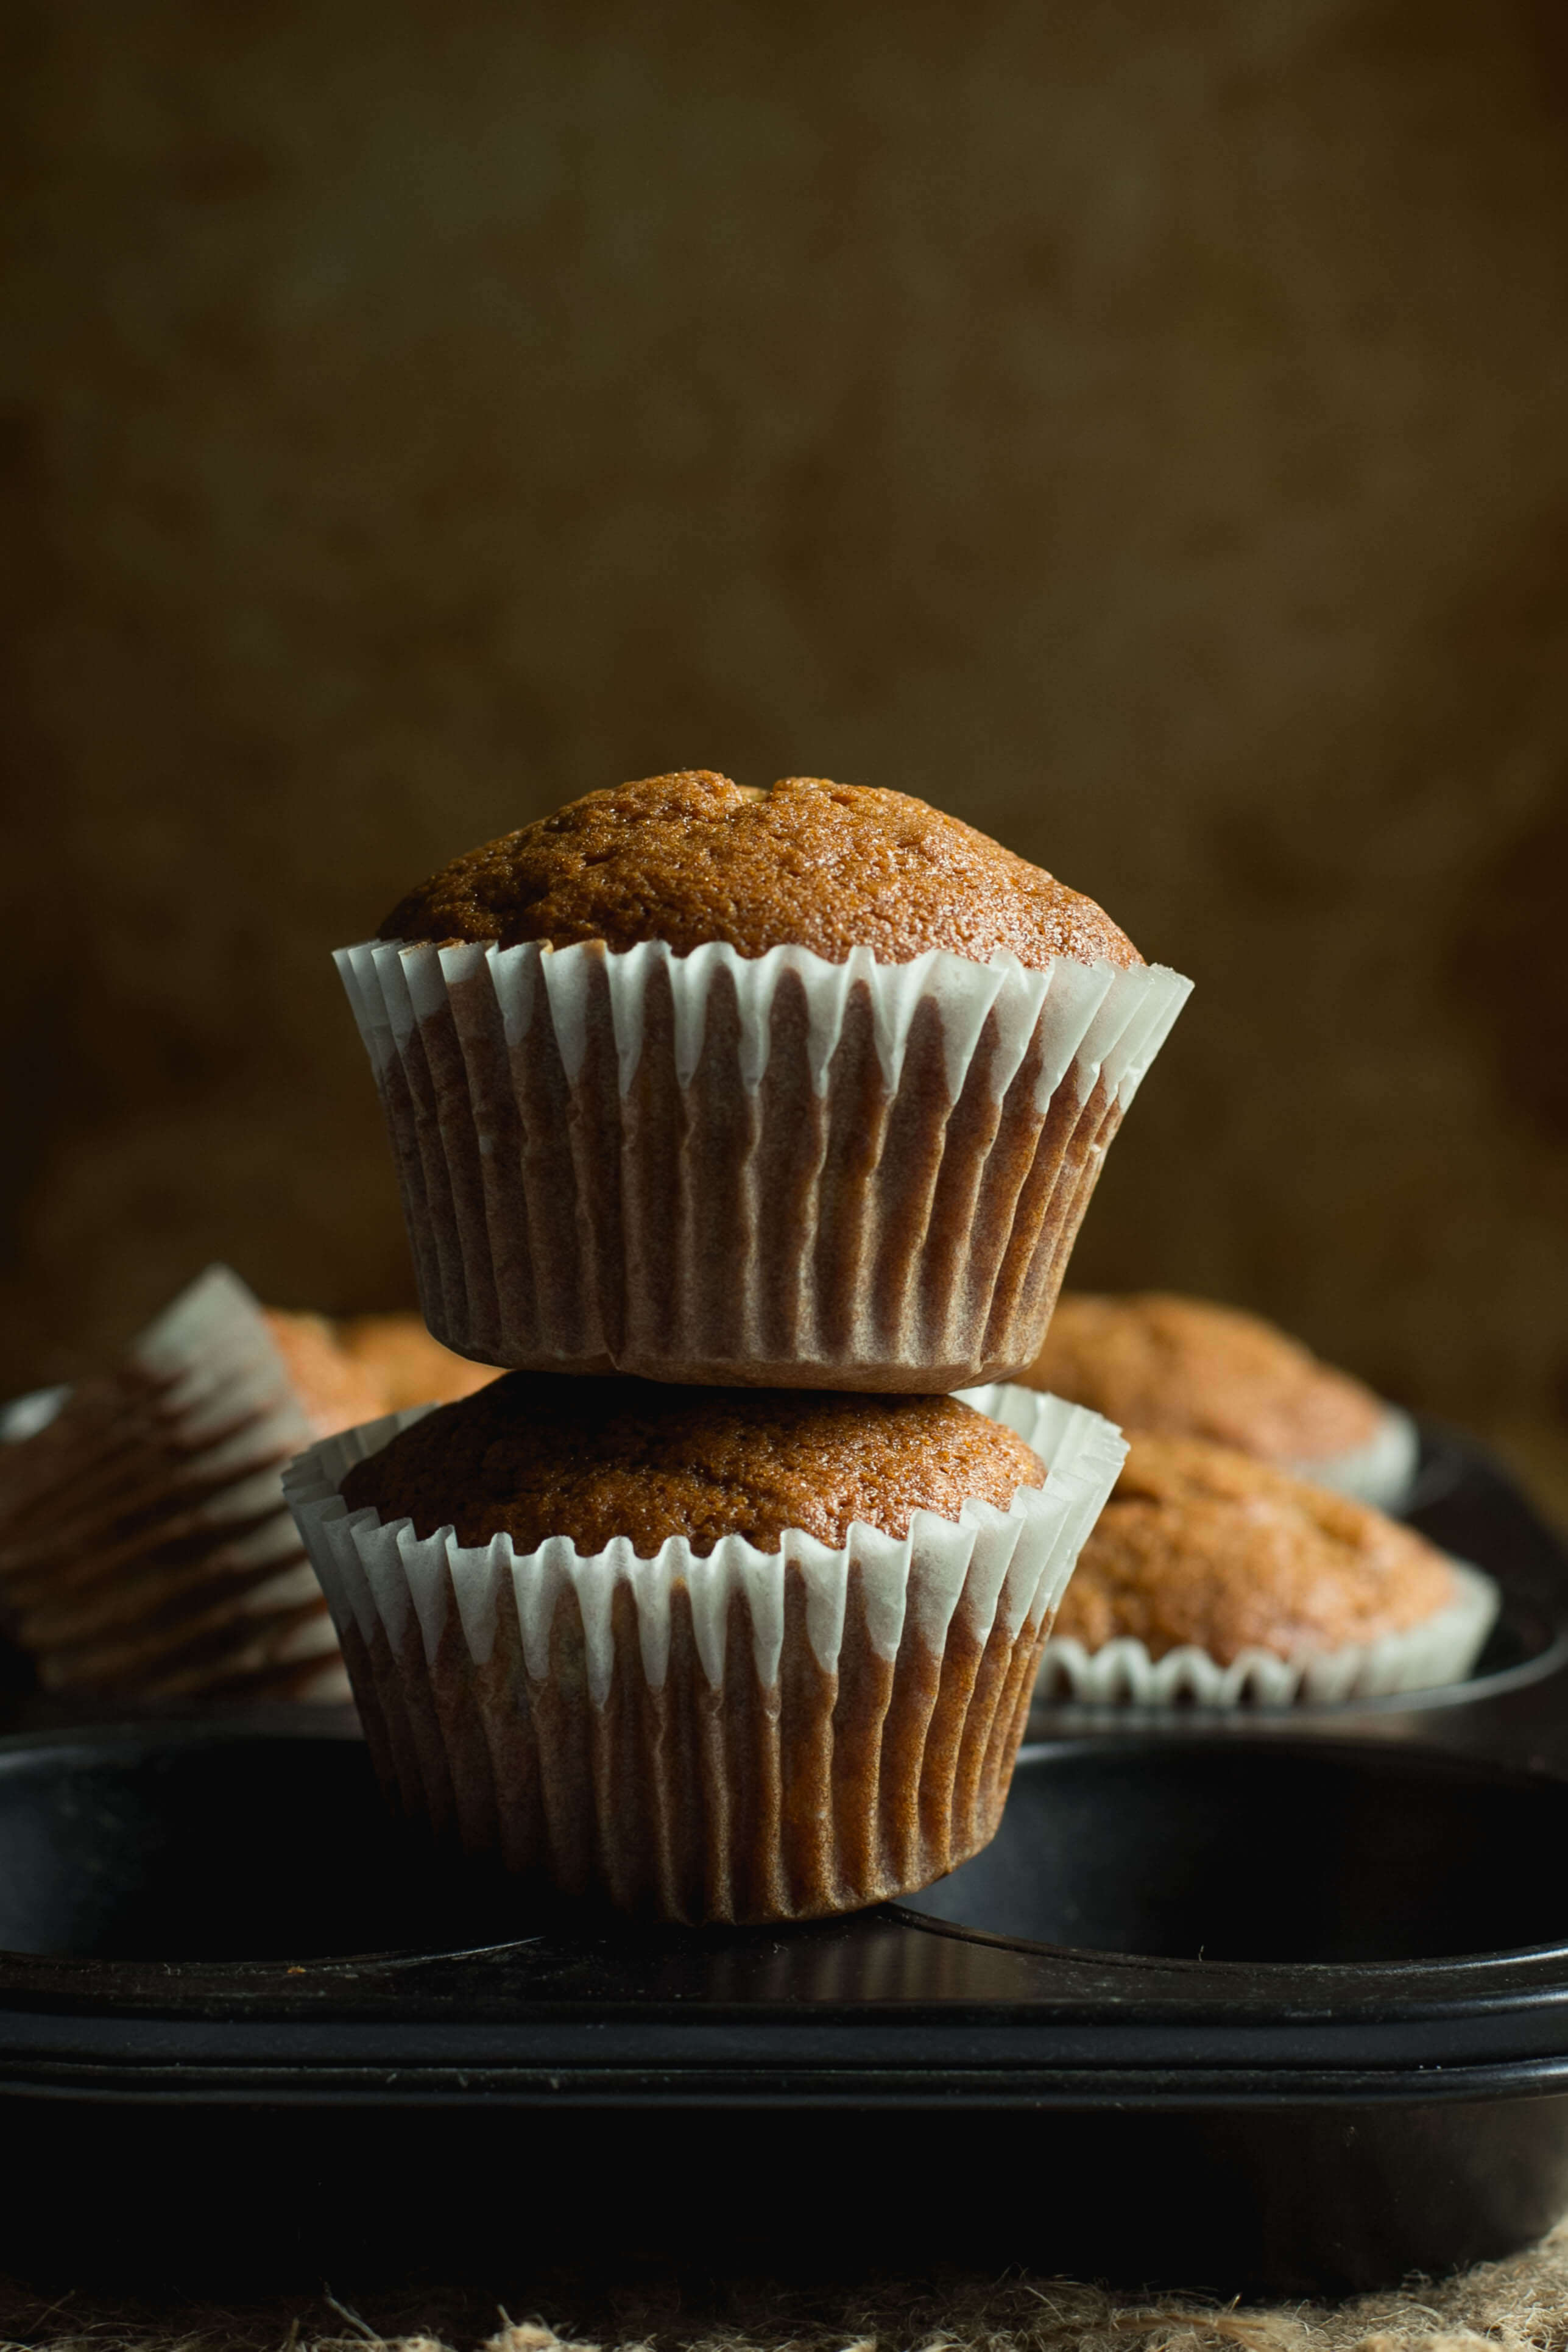 TOTS Family, Parenting, Kids, Food, Crafts, DIY and Travel IMG_9916 Classic Nut Free Banana Muffins Recipe Breads/Soups/Salads Breakfast Food Miscellaneous Recipes Sponsored  nut free muffin food breakfast banana